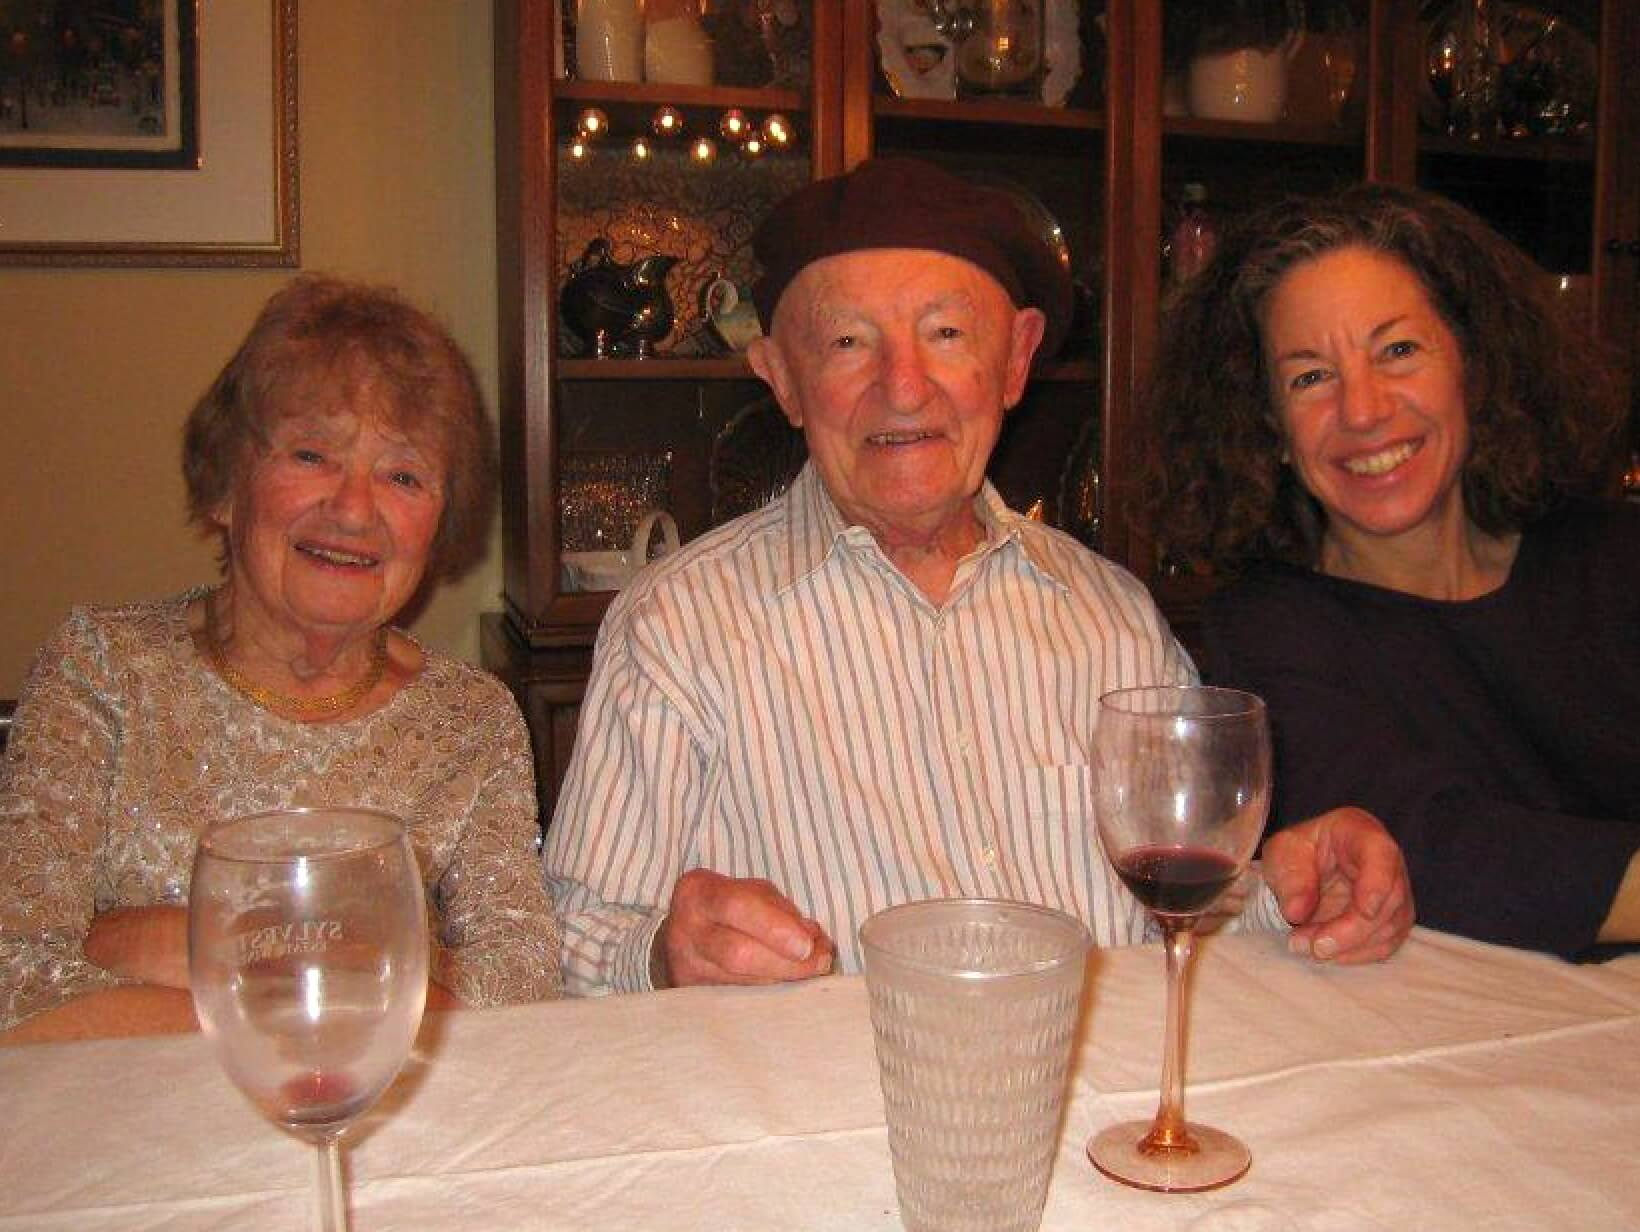 Photo of Beba, Lee, and Mary